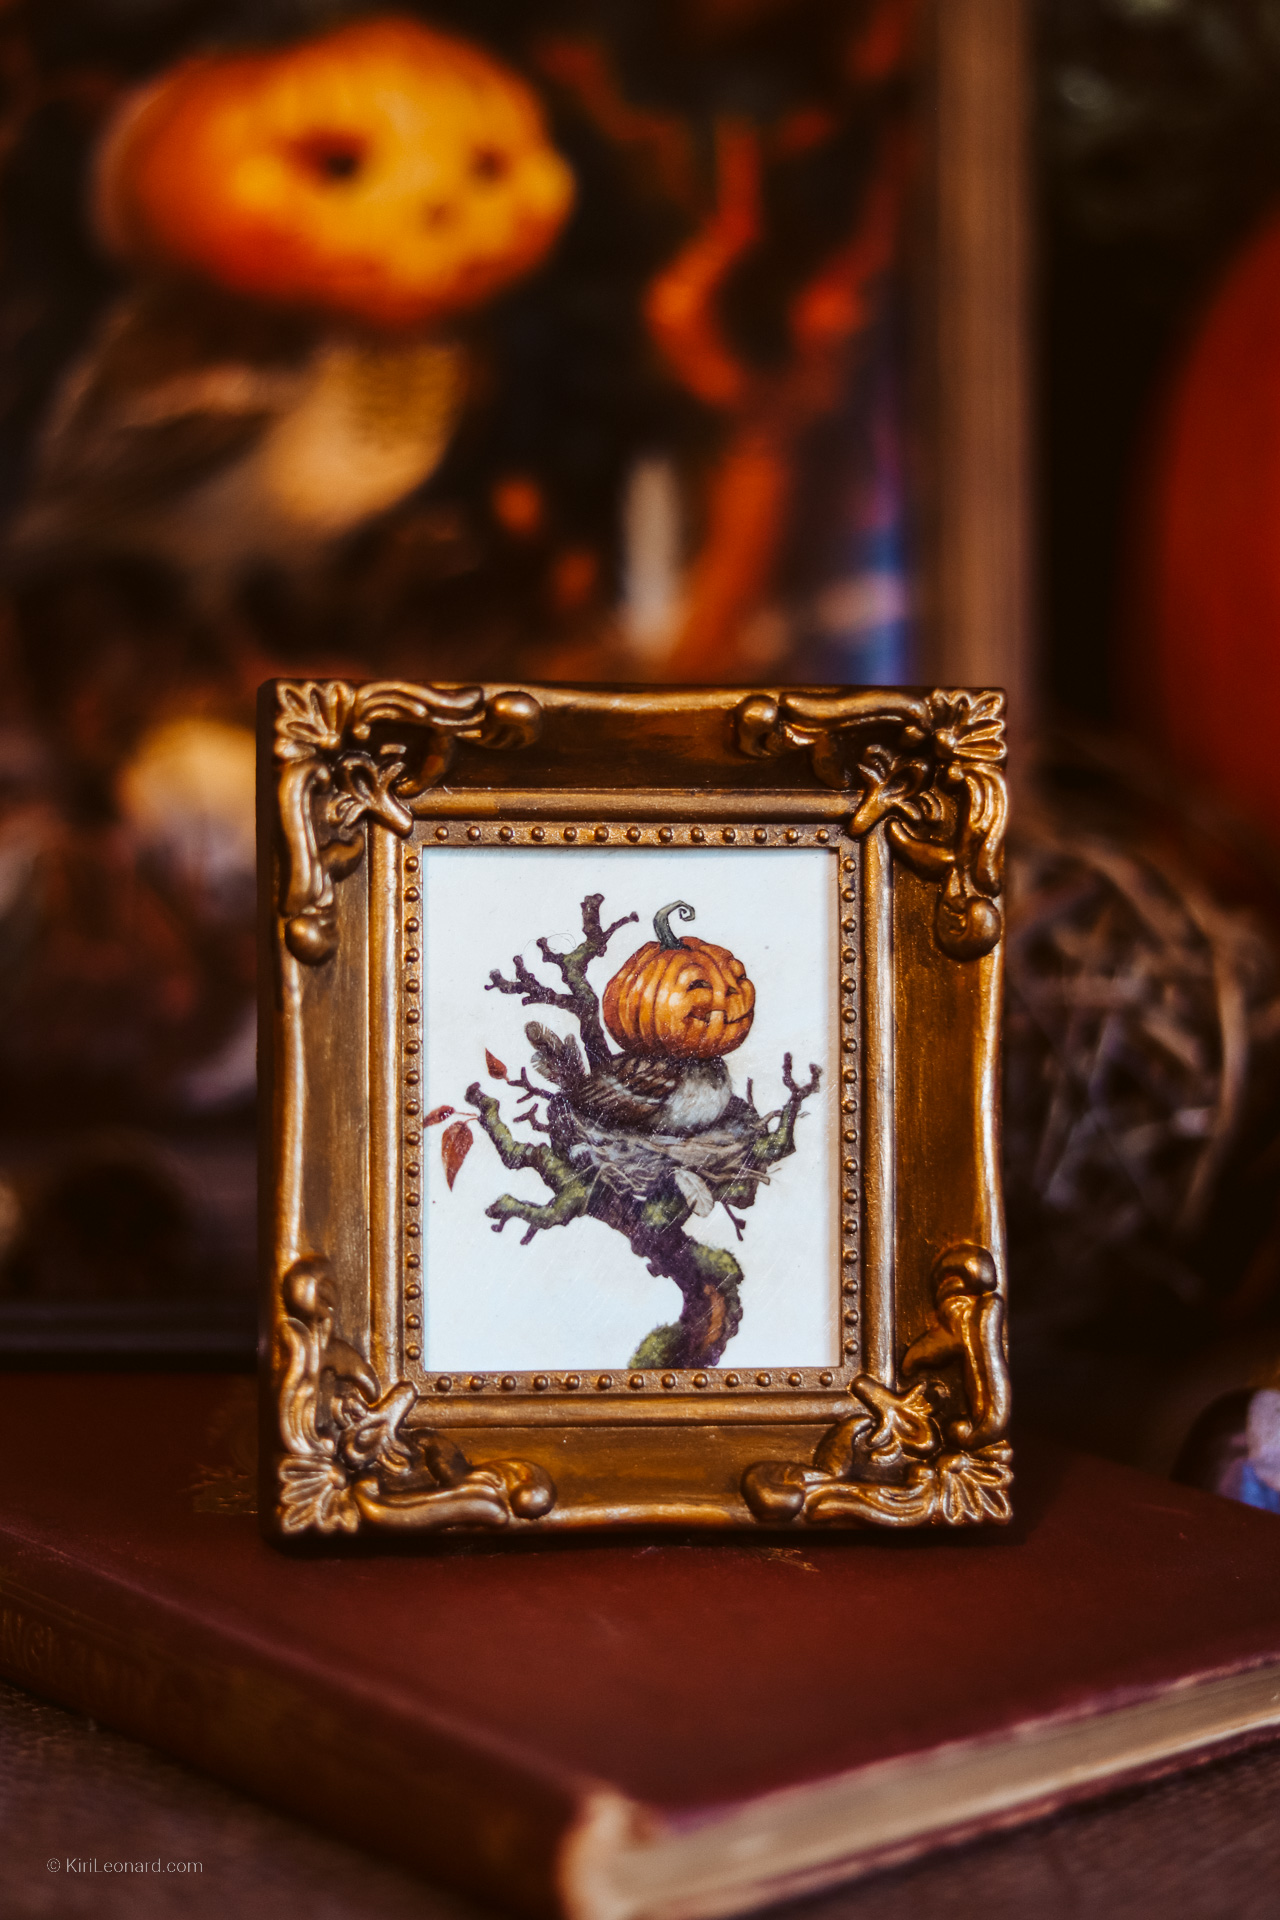 Framed Mini: The Happy Pumpkin Sparrow by Kiri Leonard